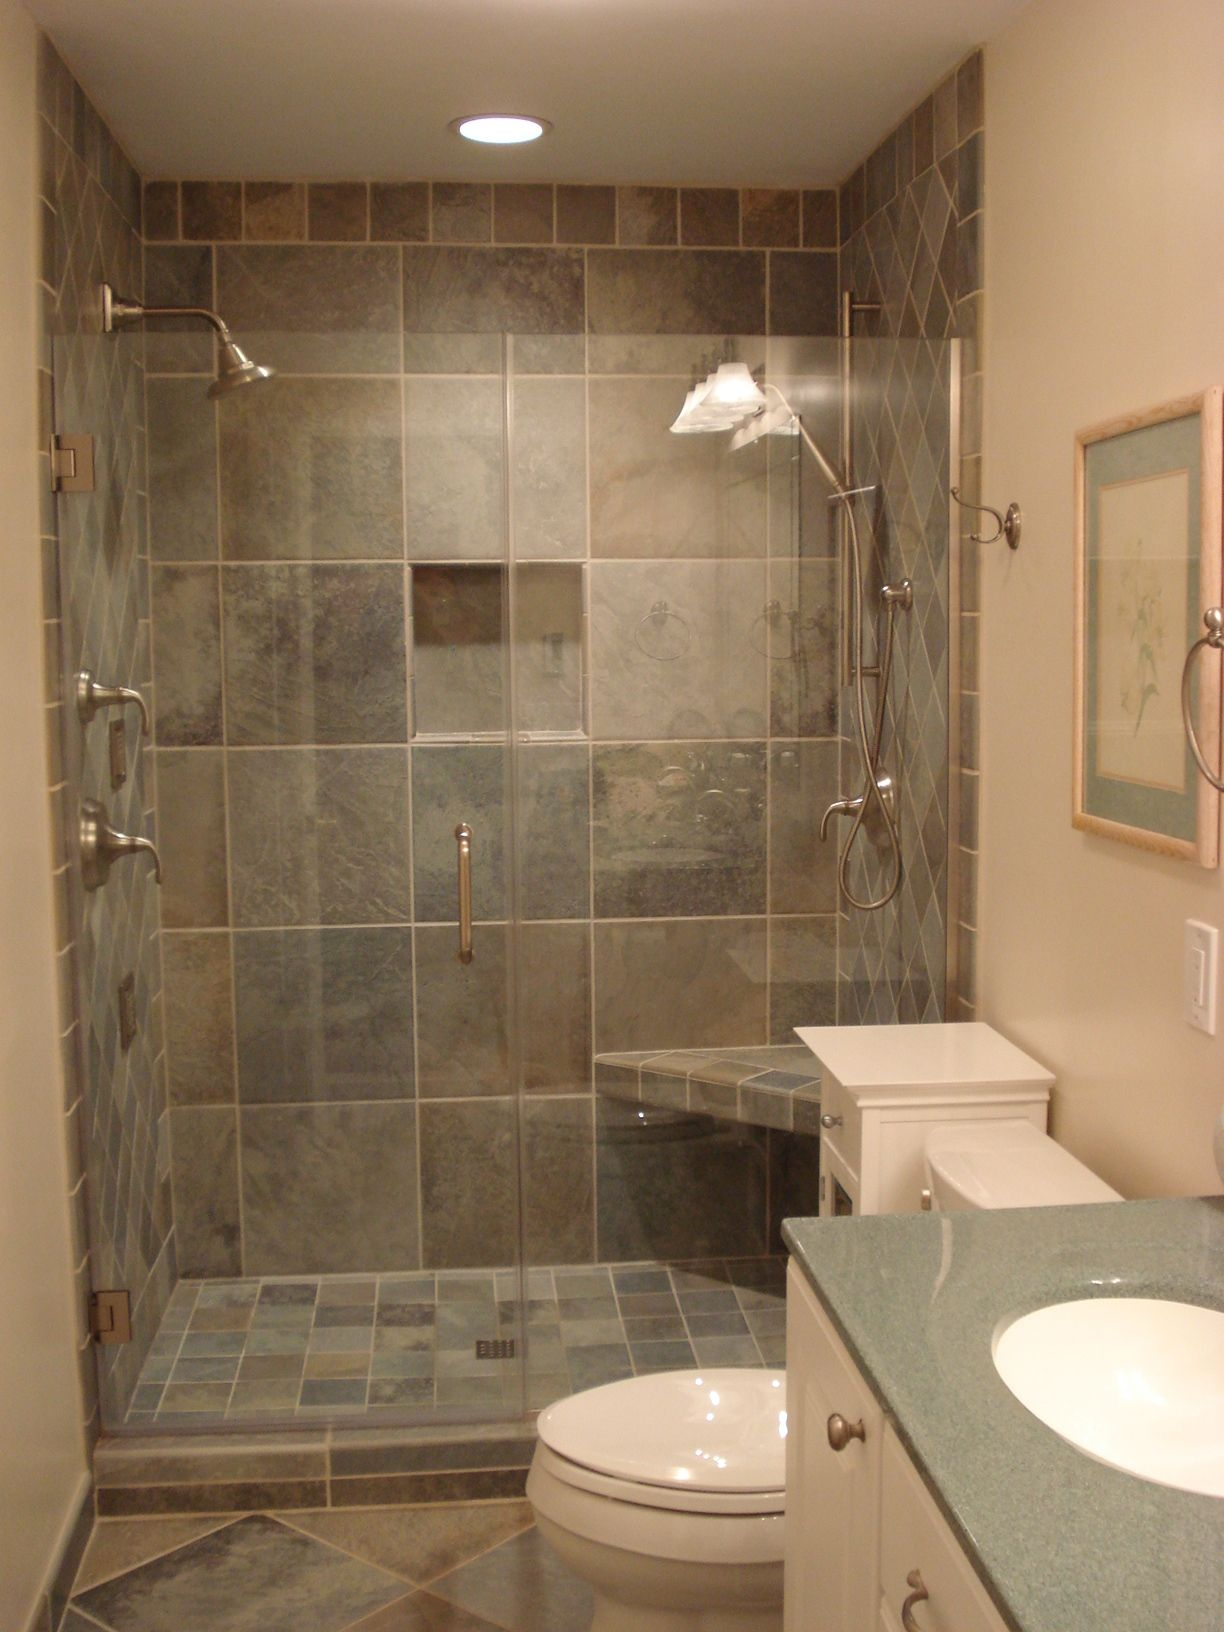 Best Bathroom Remodel Ideas You Must Have A Look Remodel Pictures Of Small Bathroom Remodels